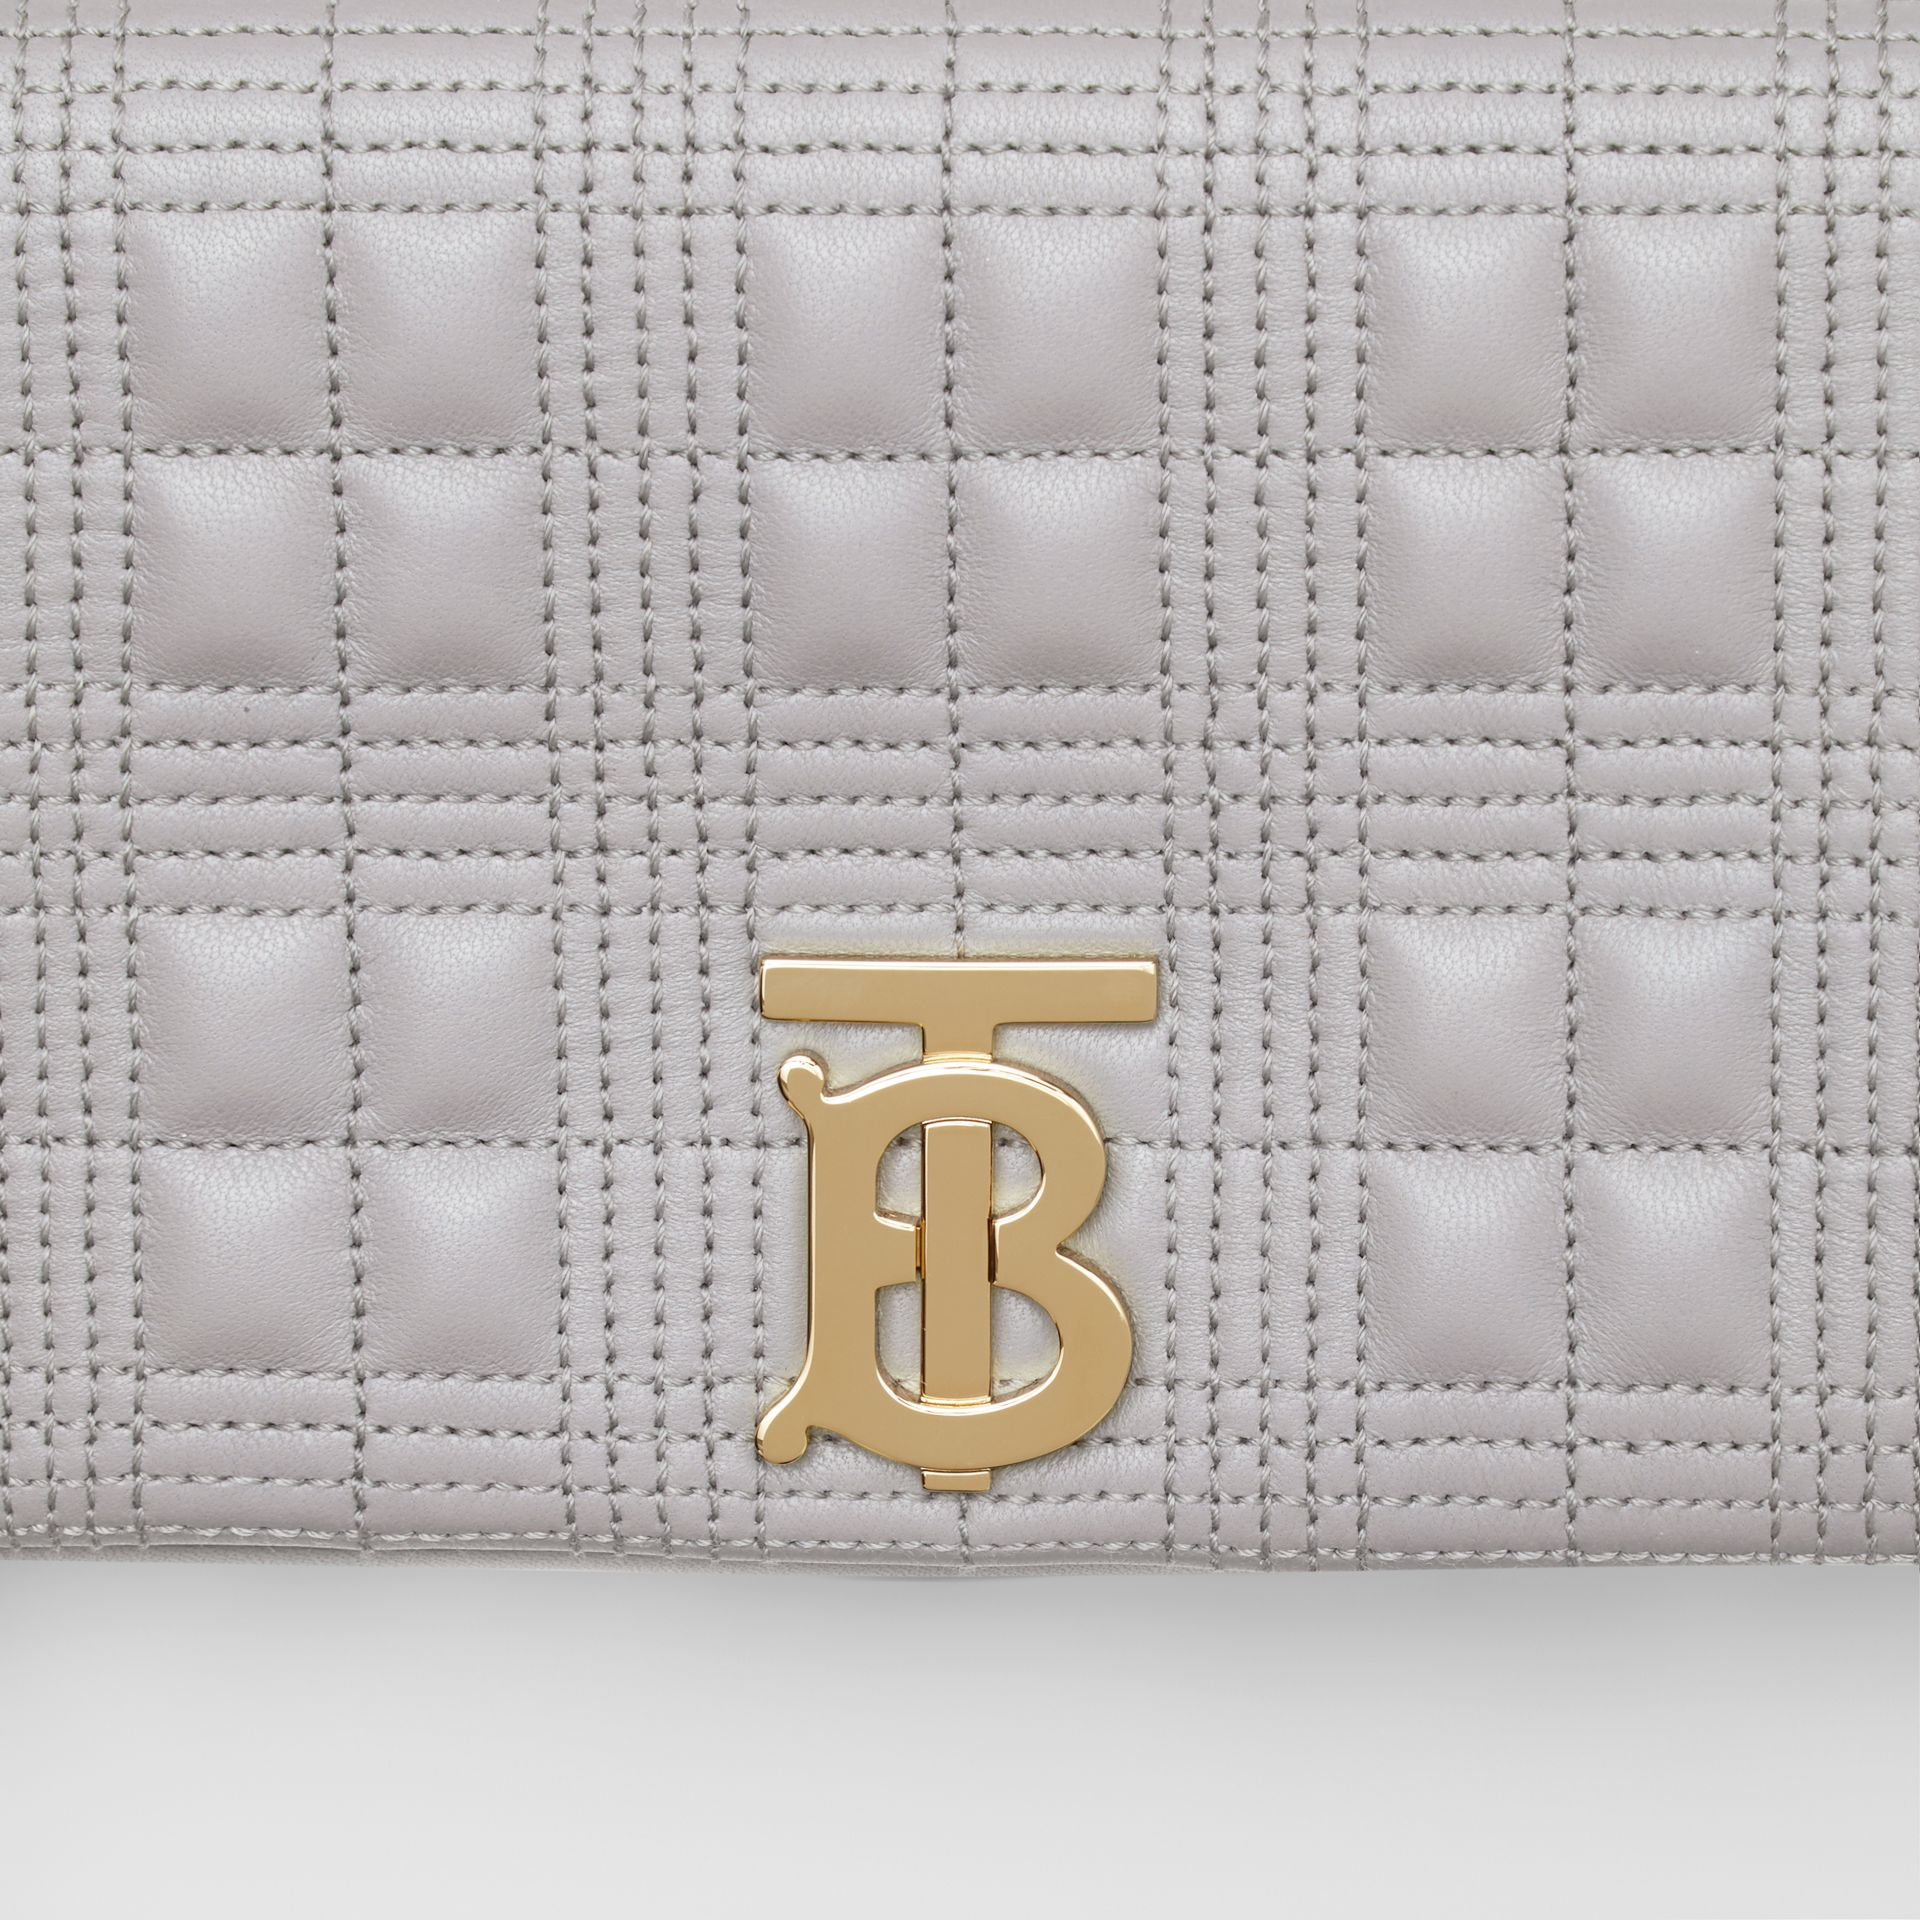 Small Quilted Lambskin Lola Bag in Cloud Grey | Burberry United States - gallery image 1